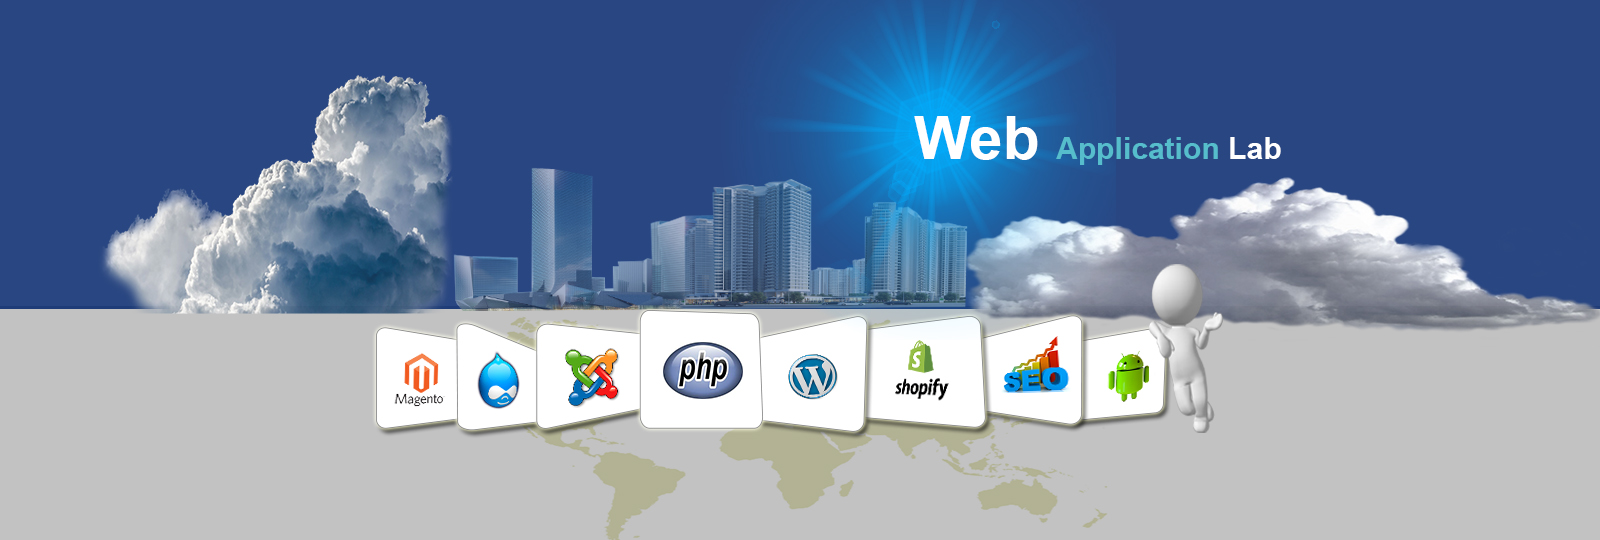 Web Application labs Banner